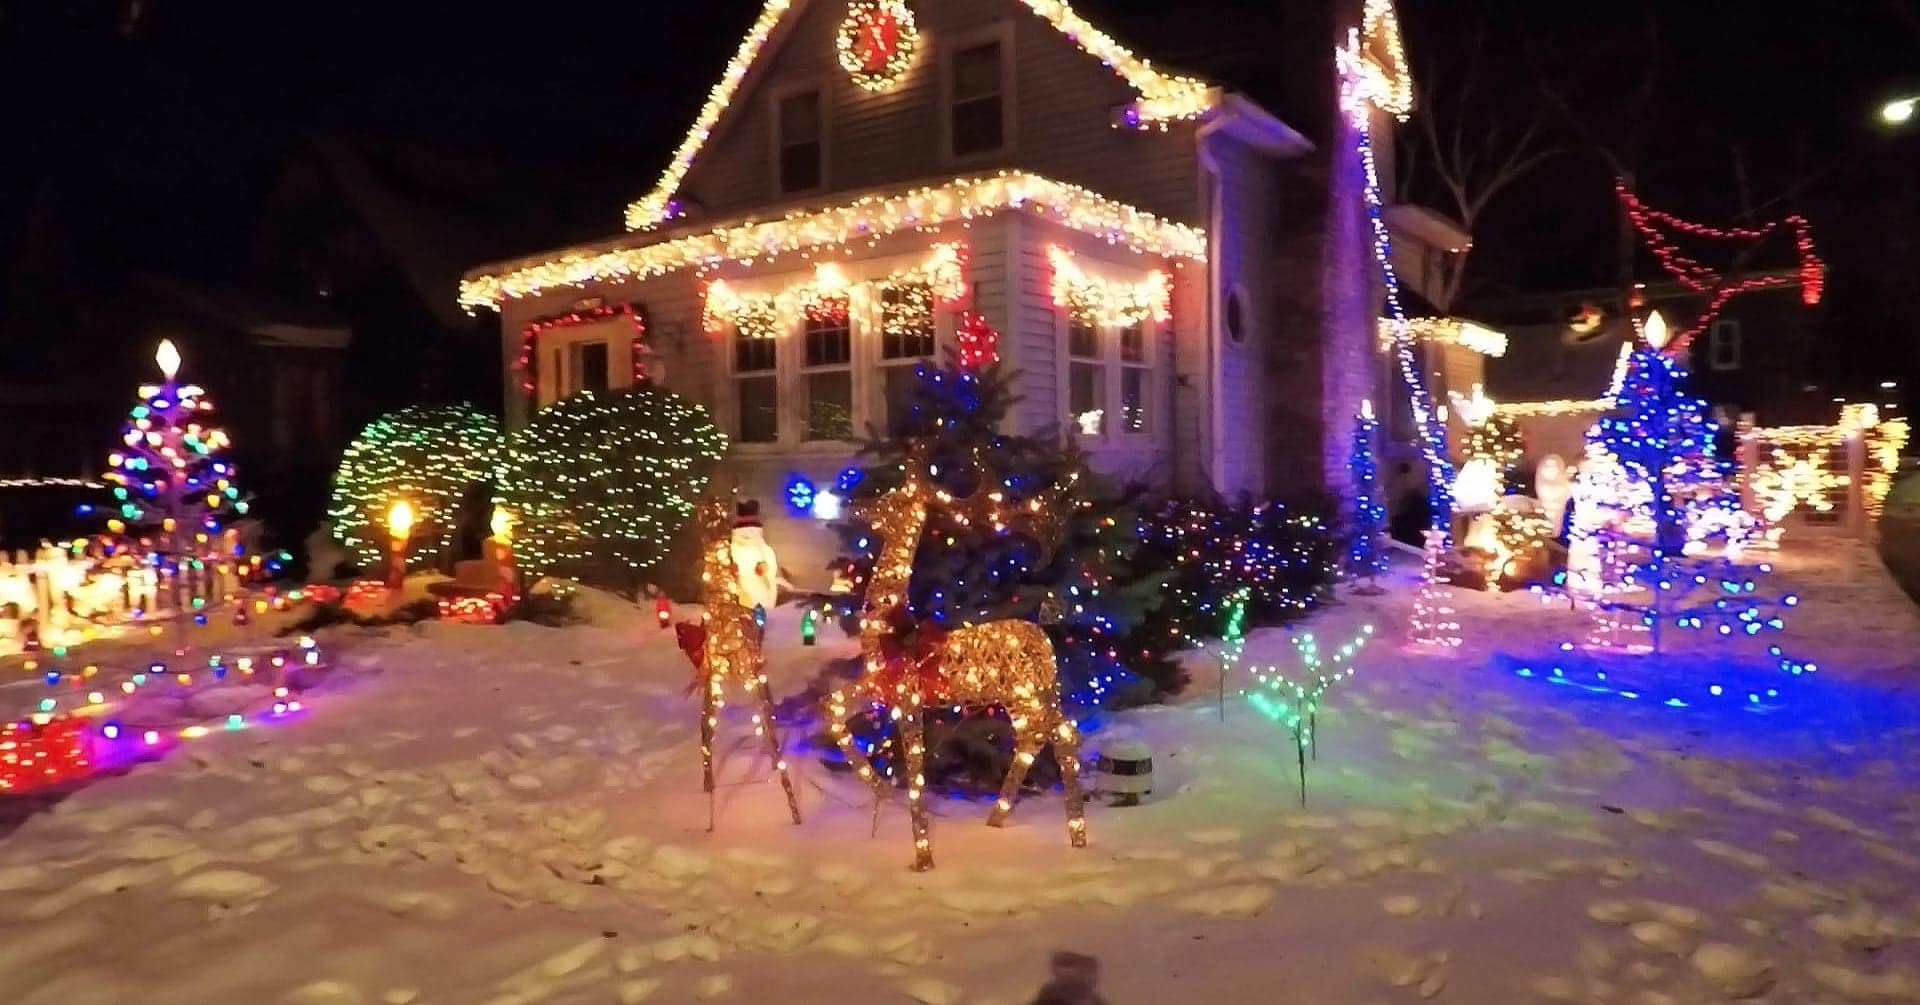 Residential Christmas lights, display of Christmas lights